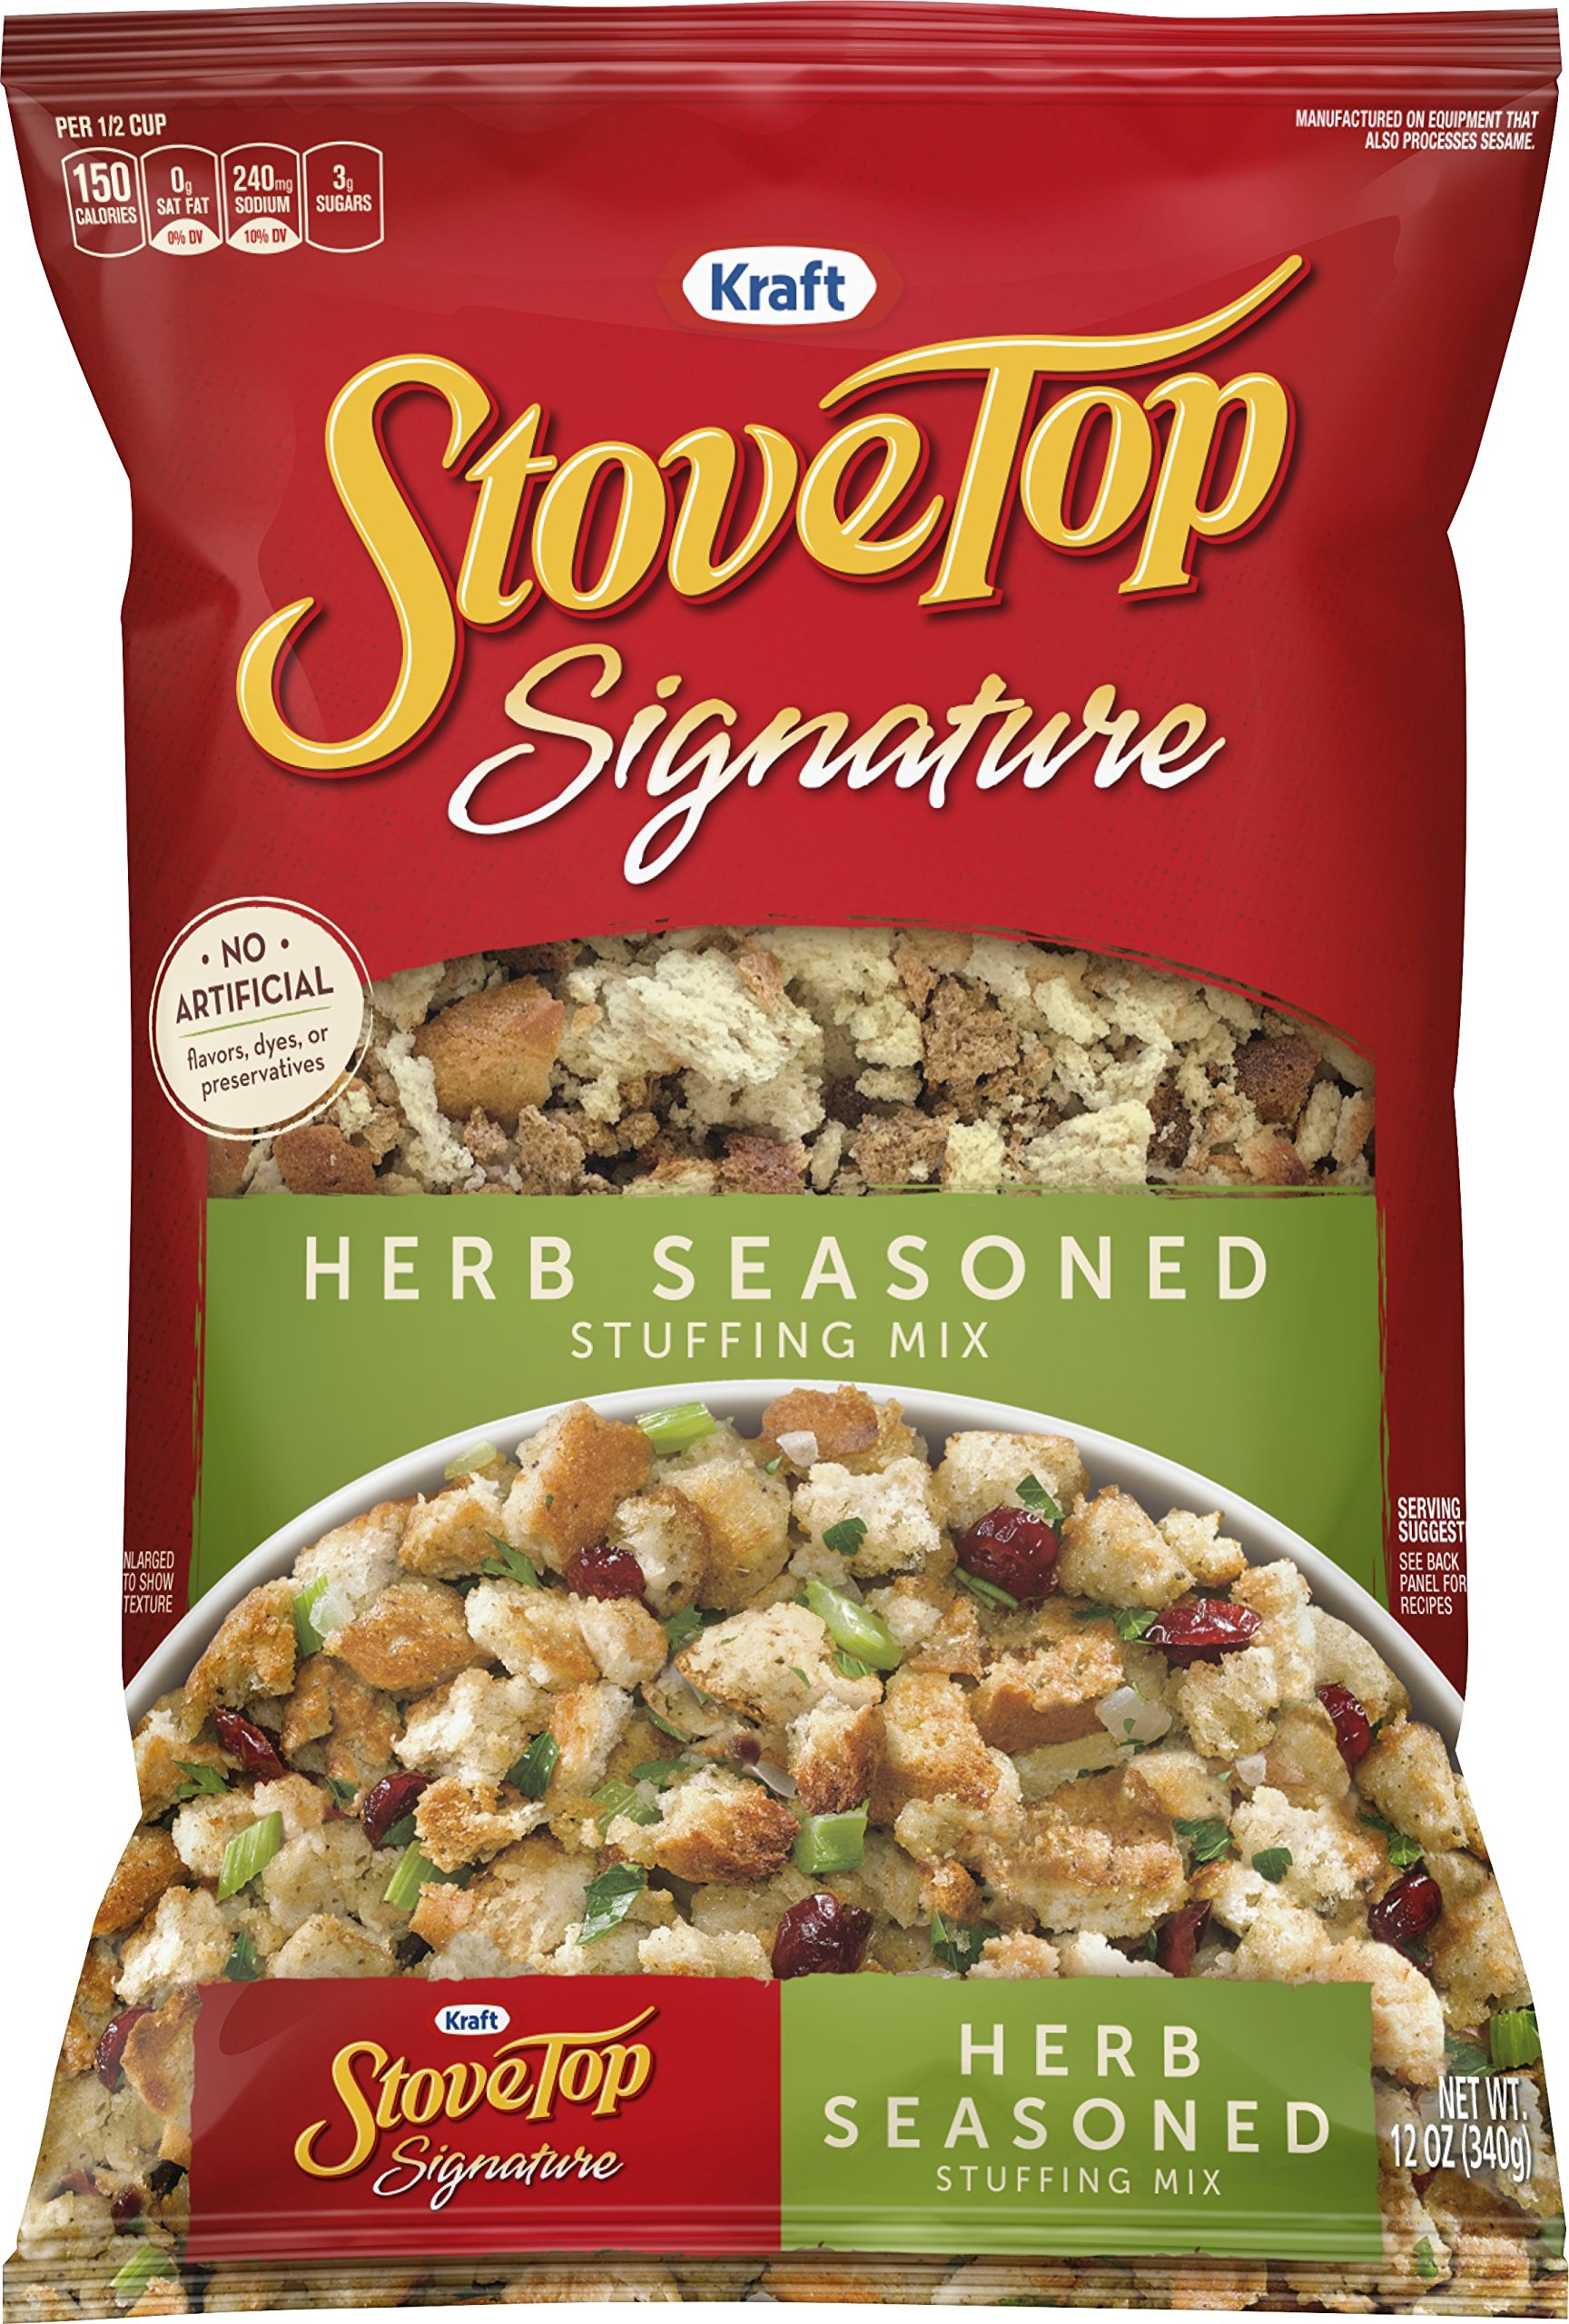 Stove Top Classic Homestyle Herb Stuffing Mix (12 oz Box) by Stop Top